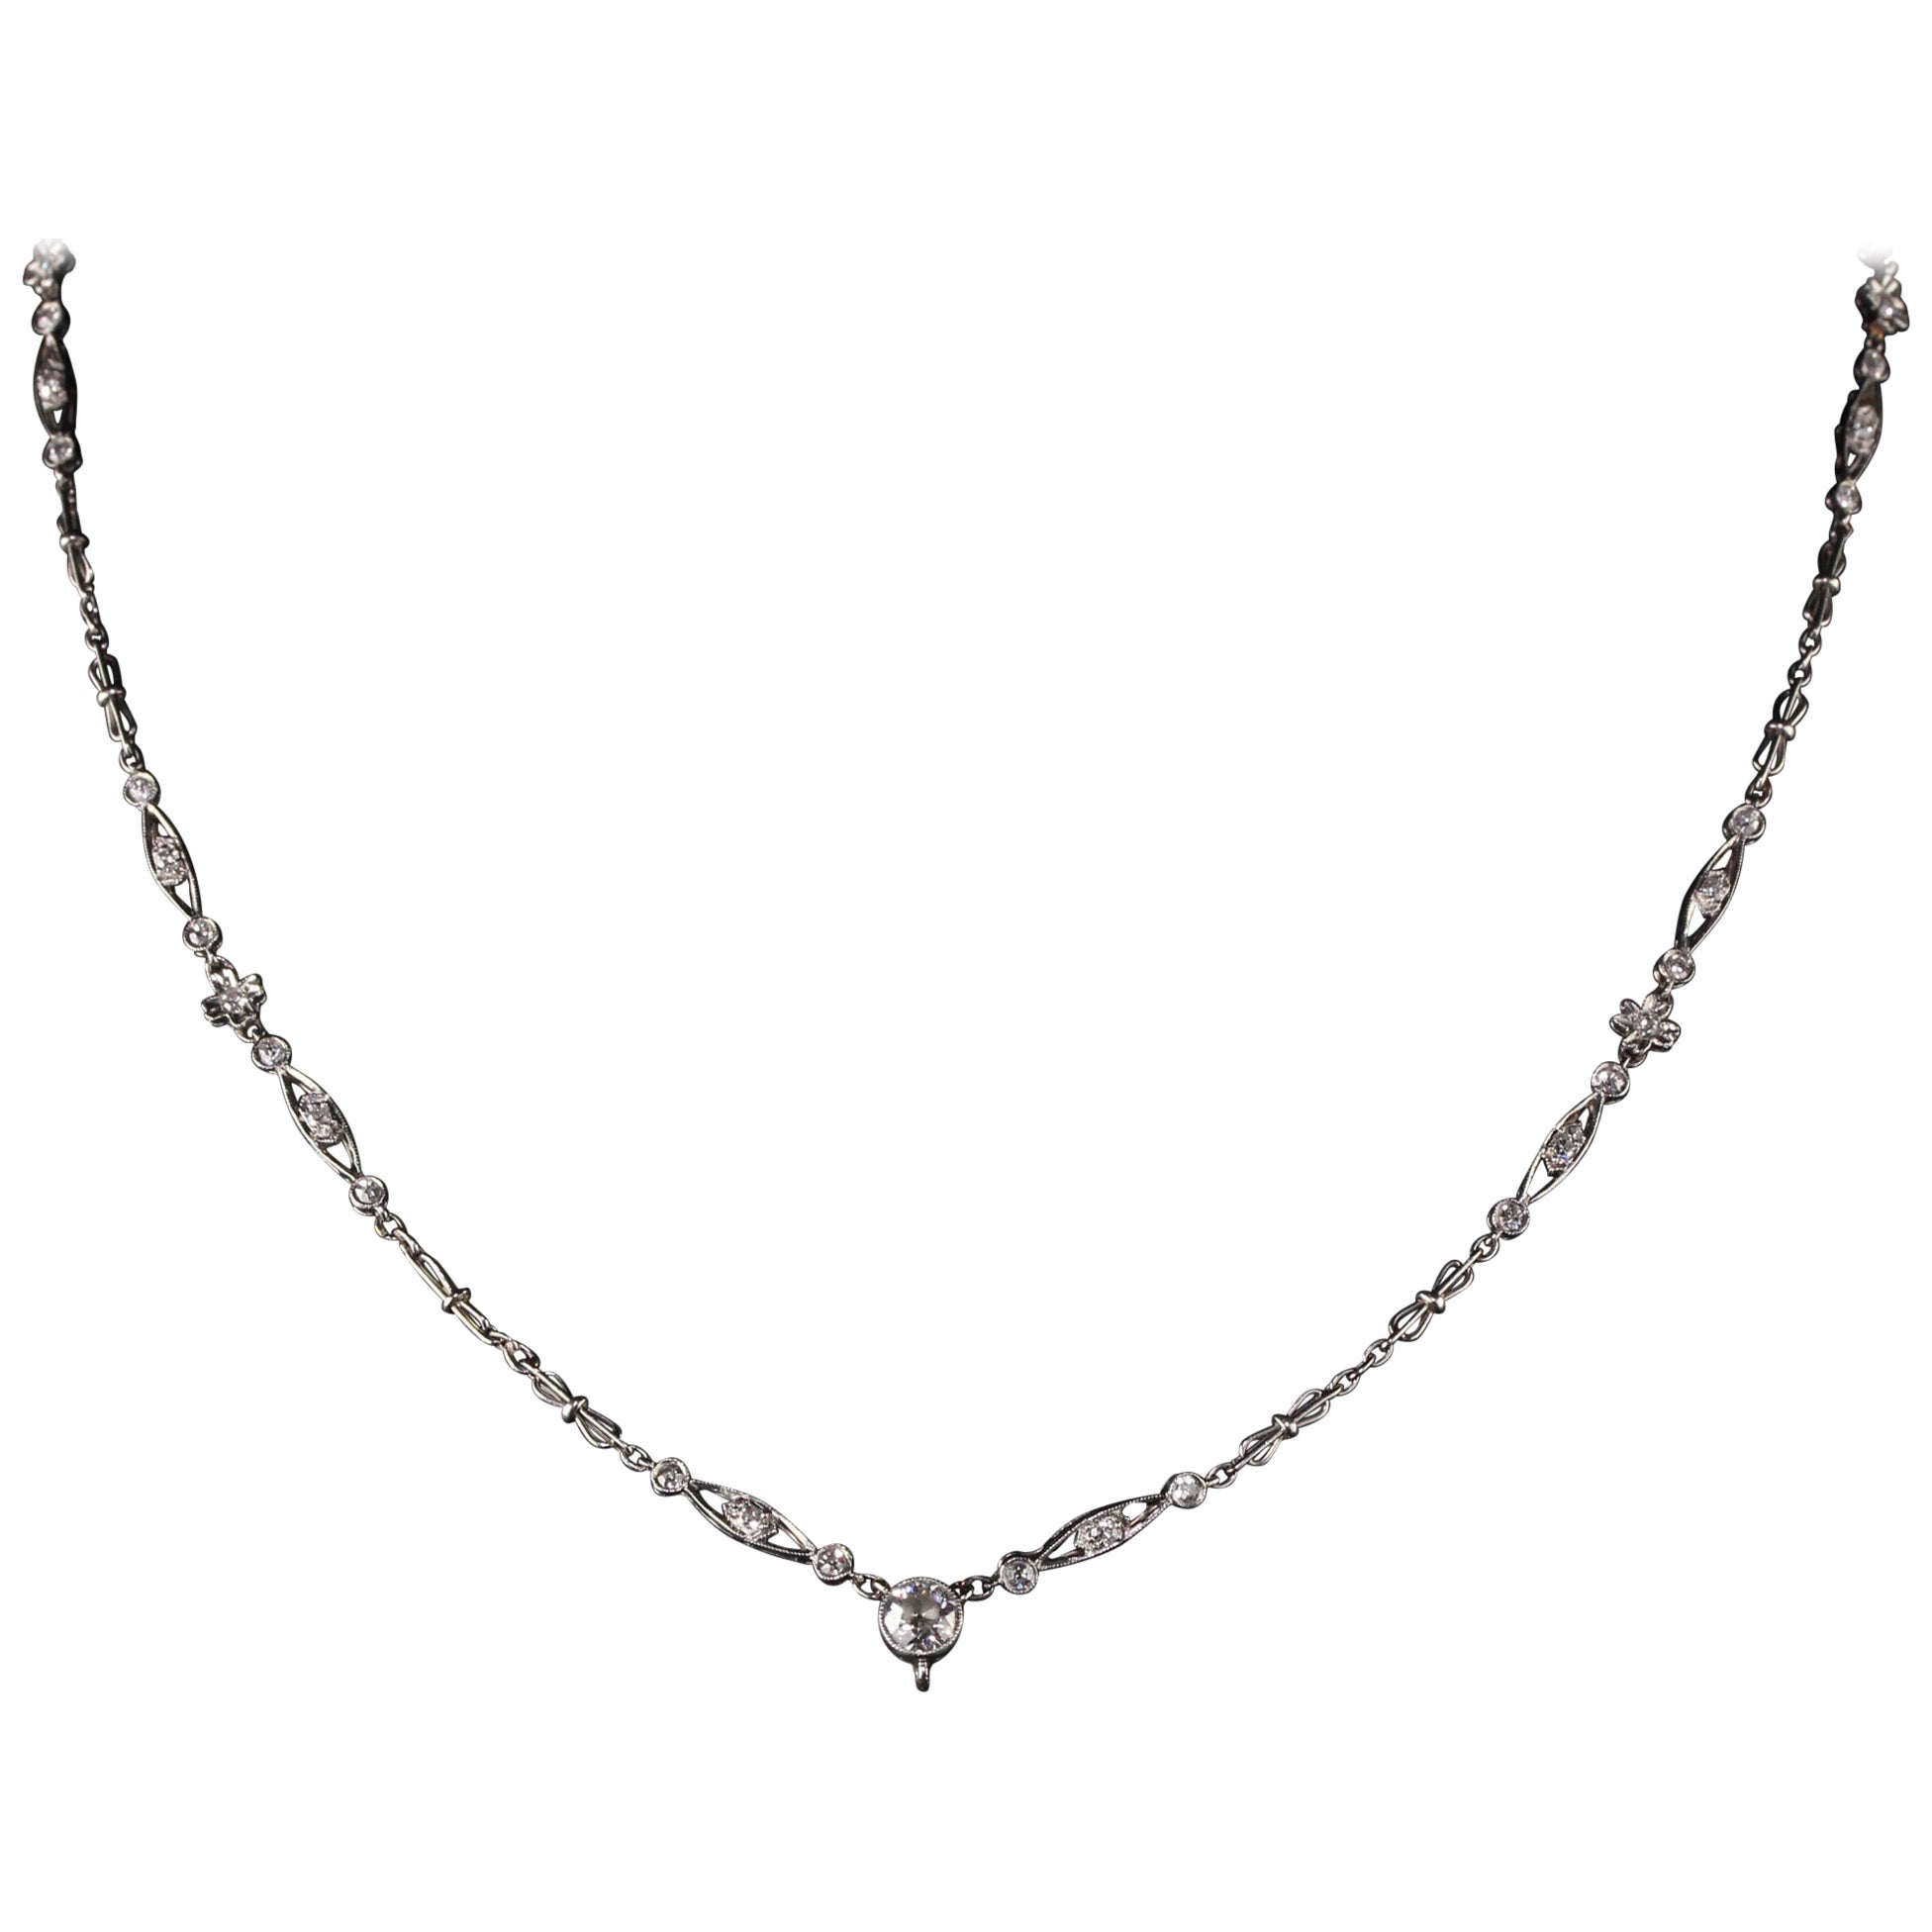 Antique Art Deco Platinum Old European Diamond Necklace